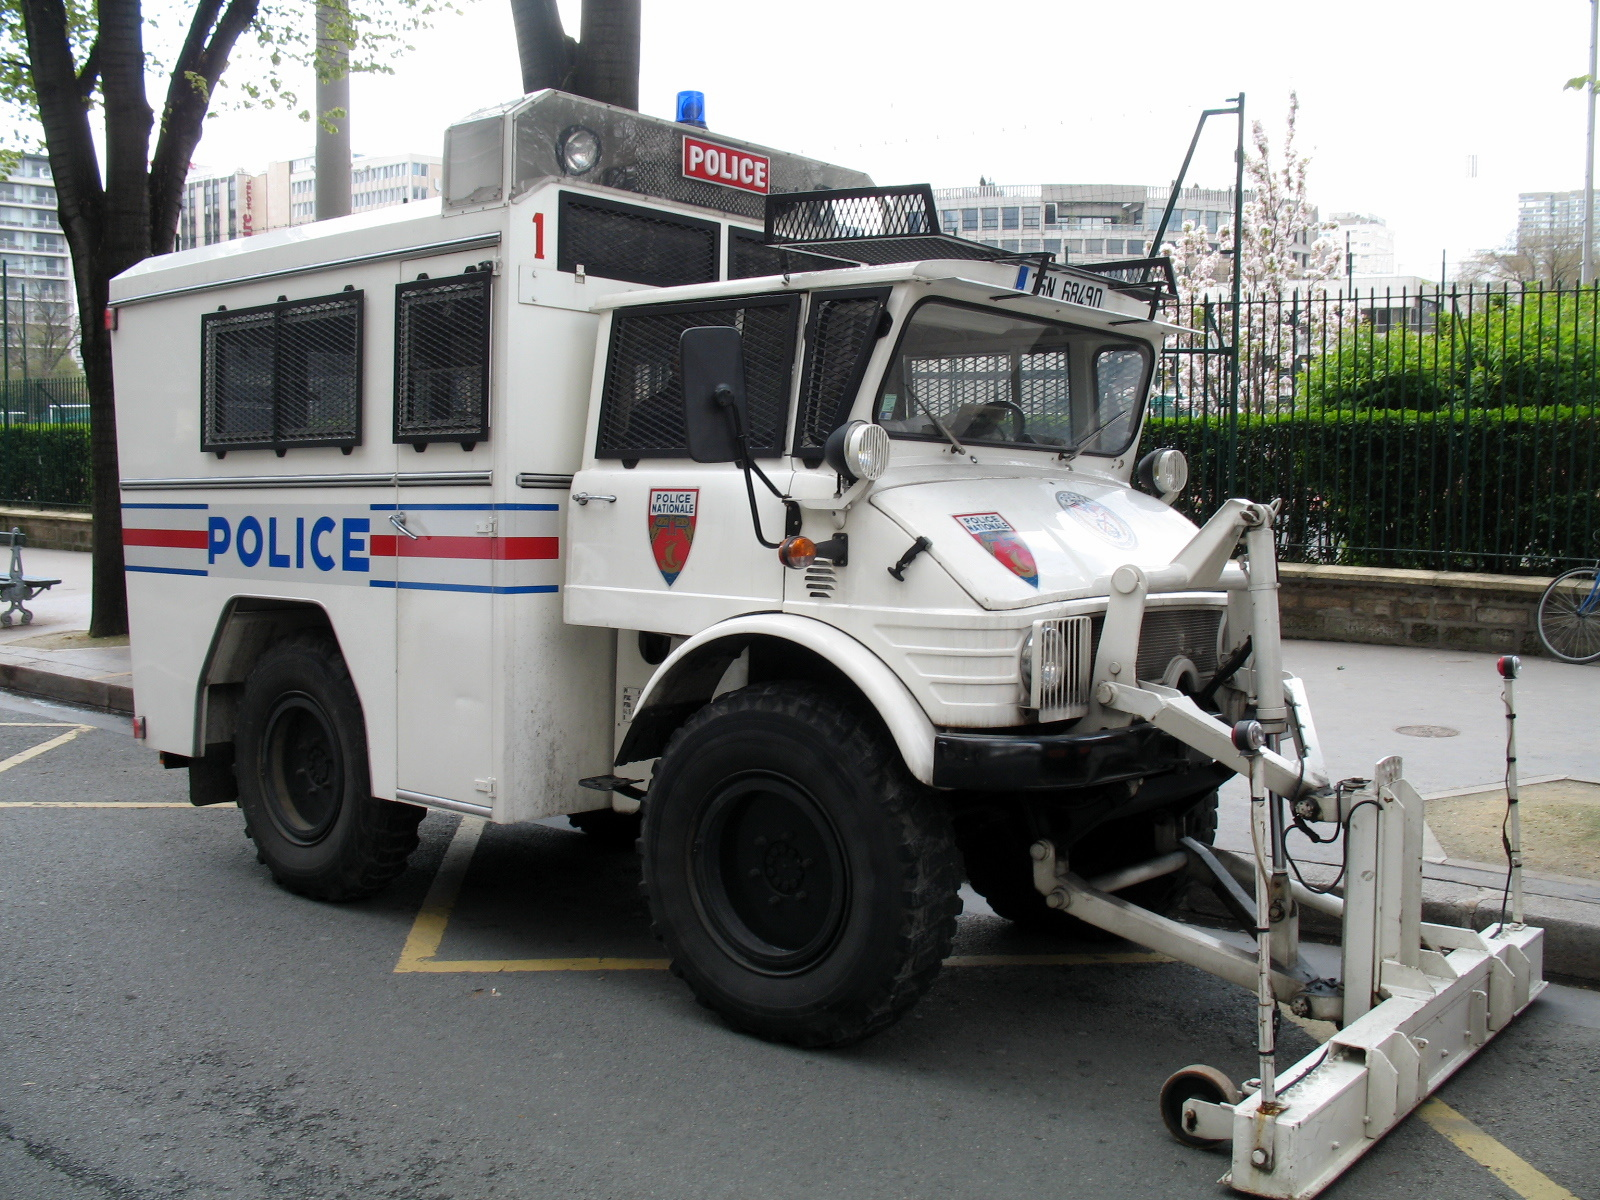 Forestry Truck For Sale File:Police nationale - Mercedes Benz Unimog 416 A.jpg - Wikimedia ...